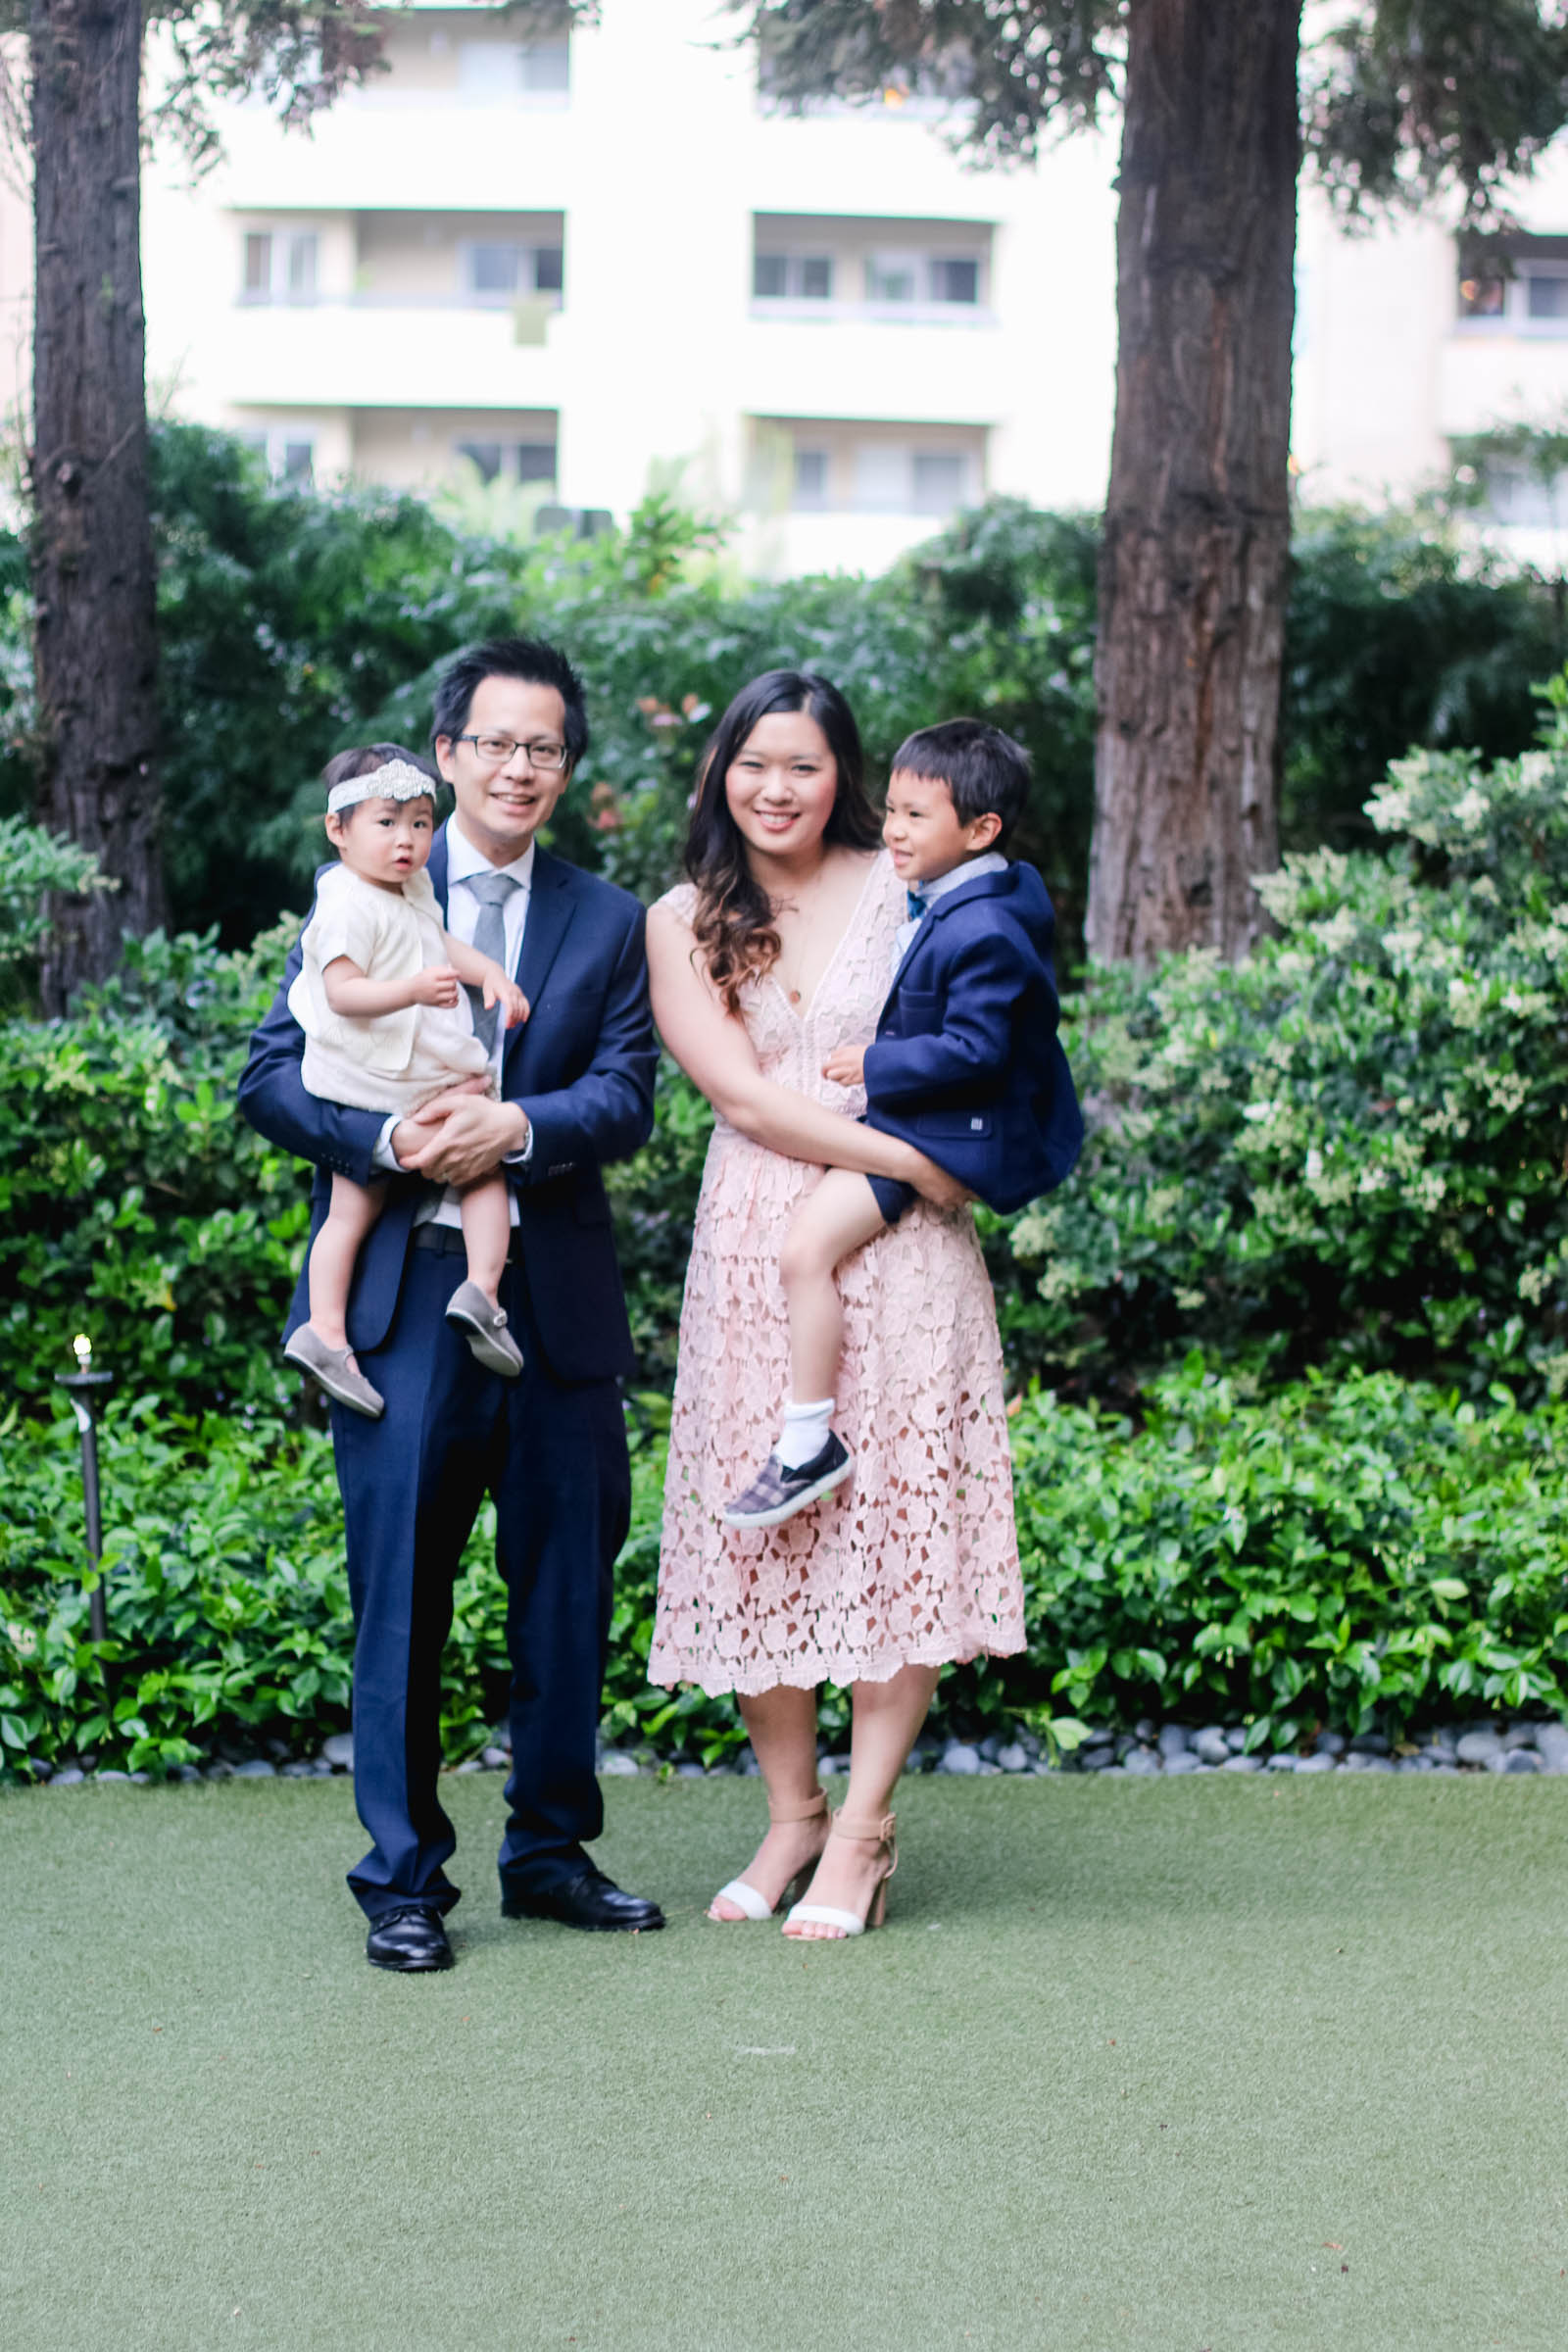 Family Fashion For A Spring Wedding